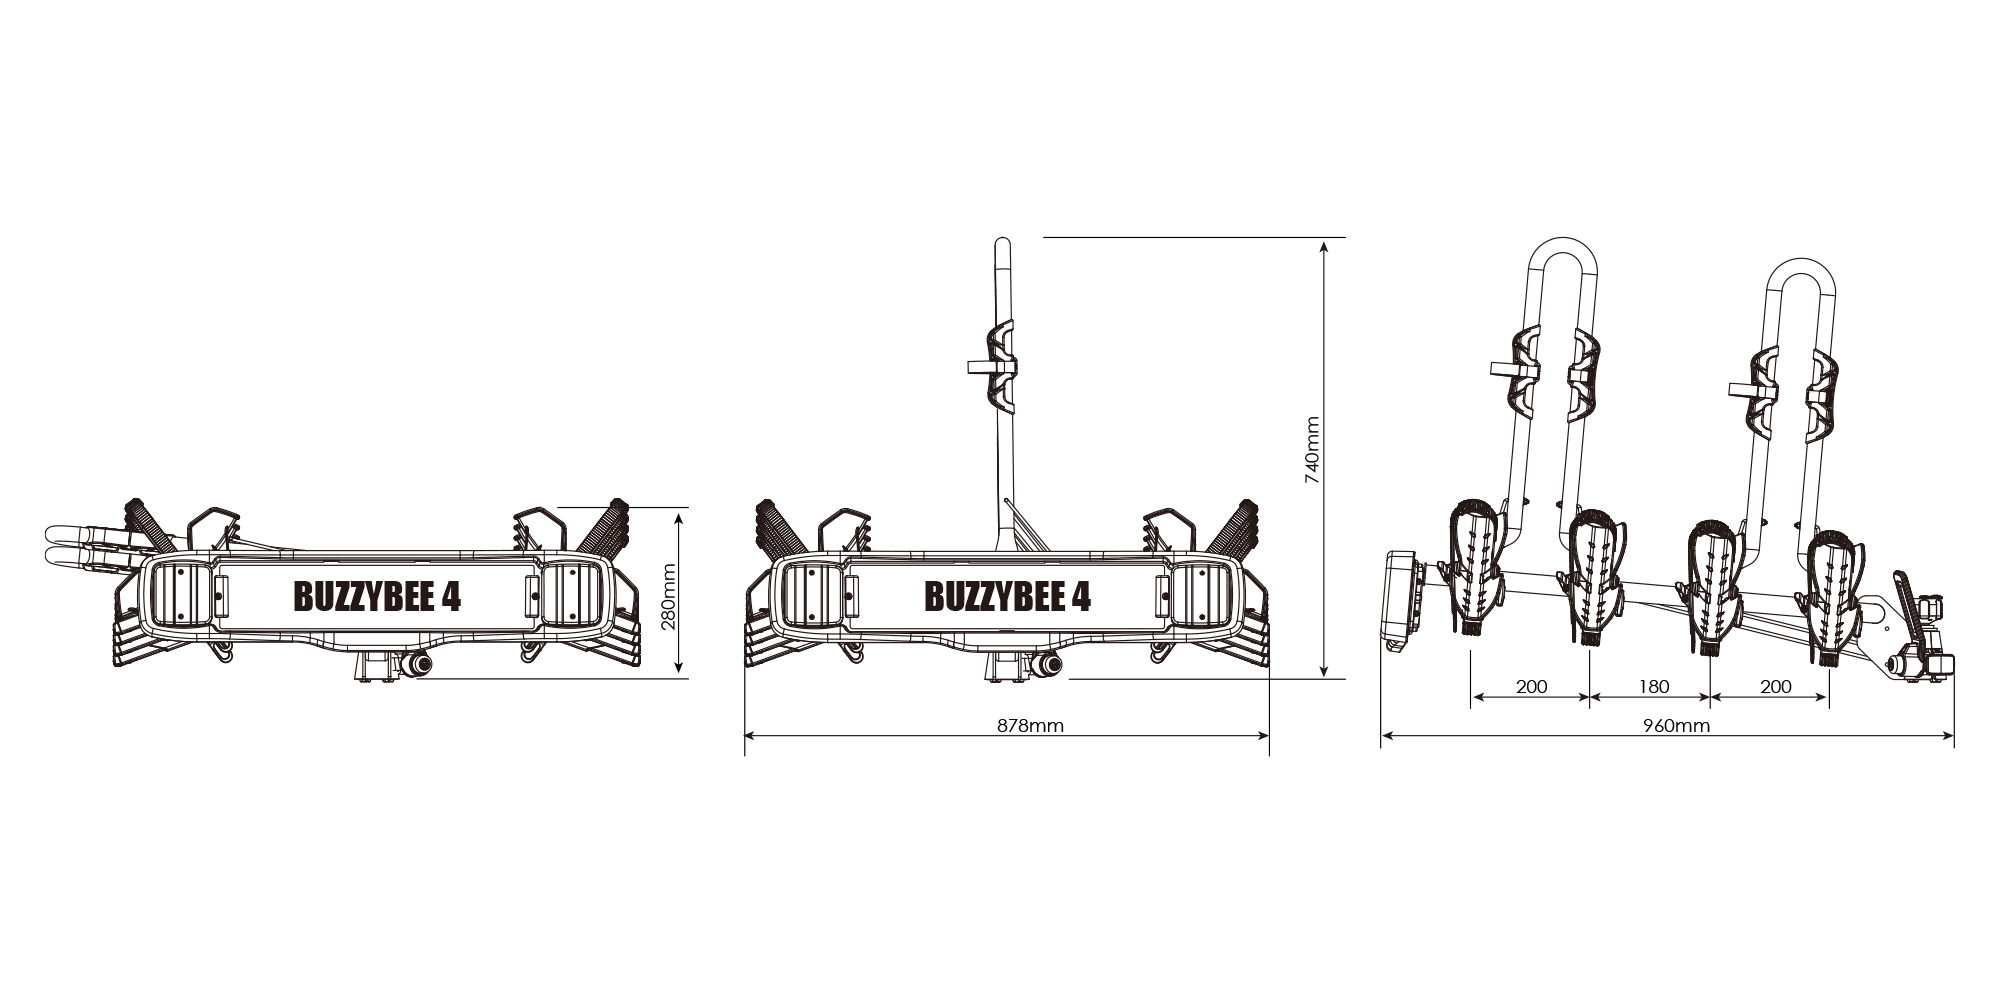 BUZZRACK Eazzy 4 technical specifications